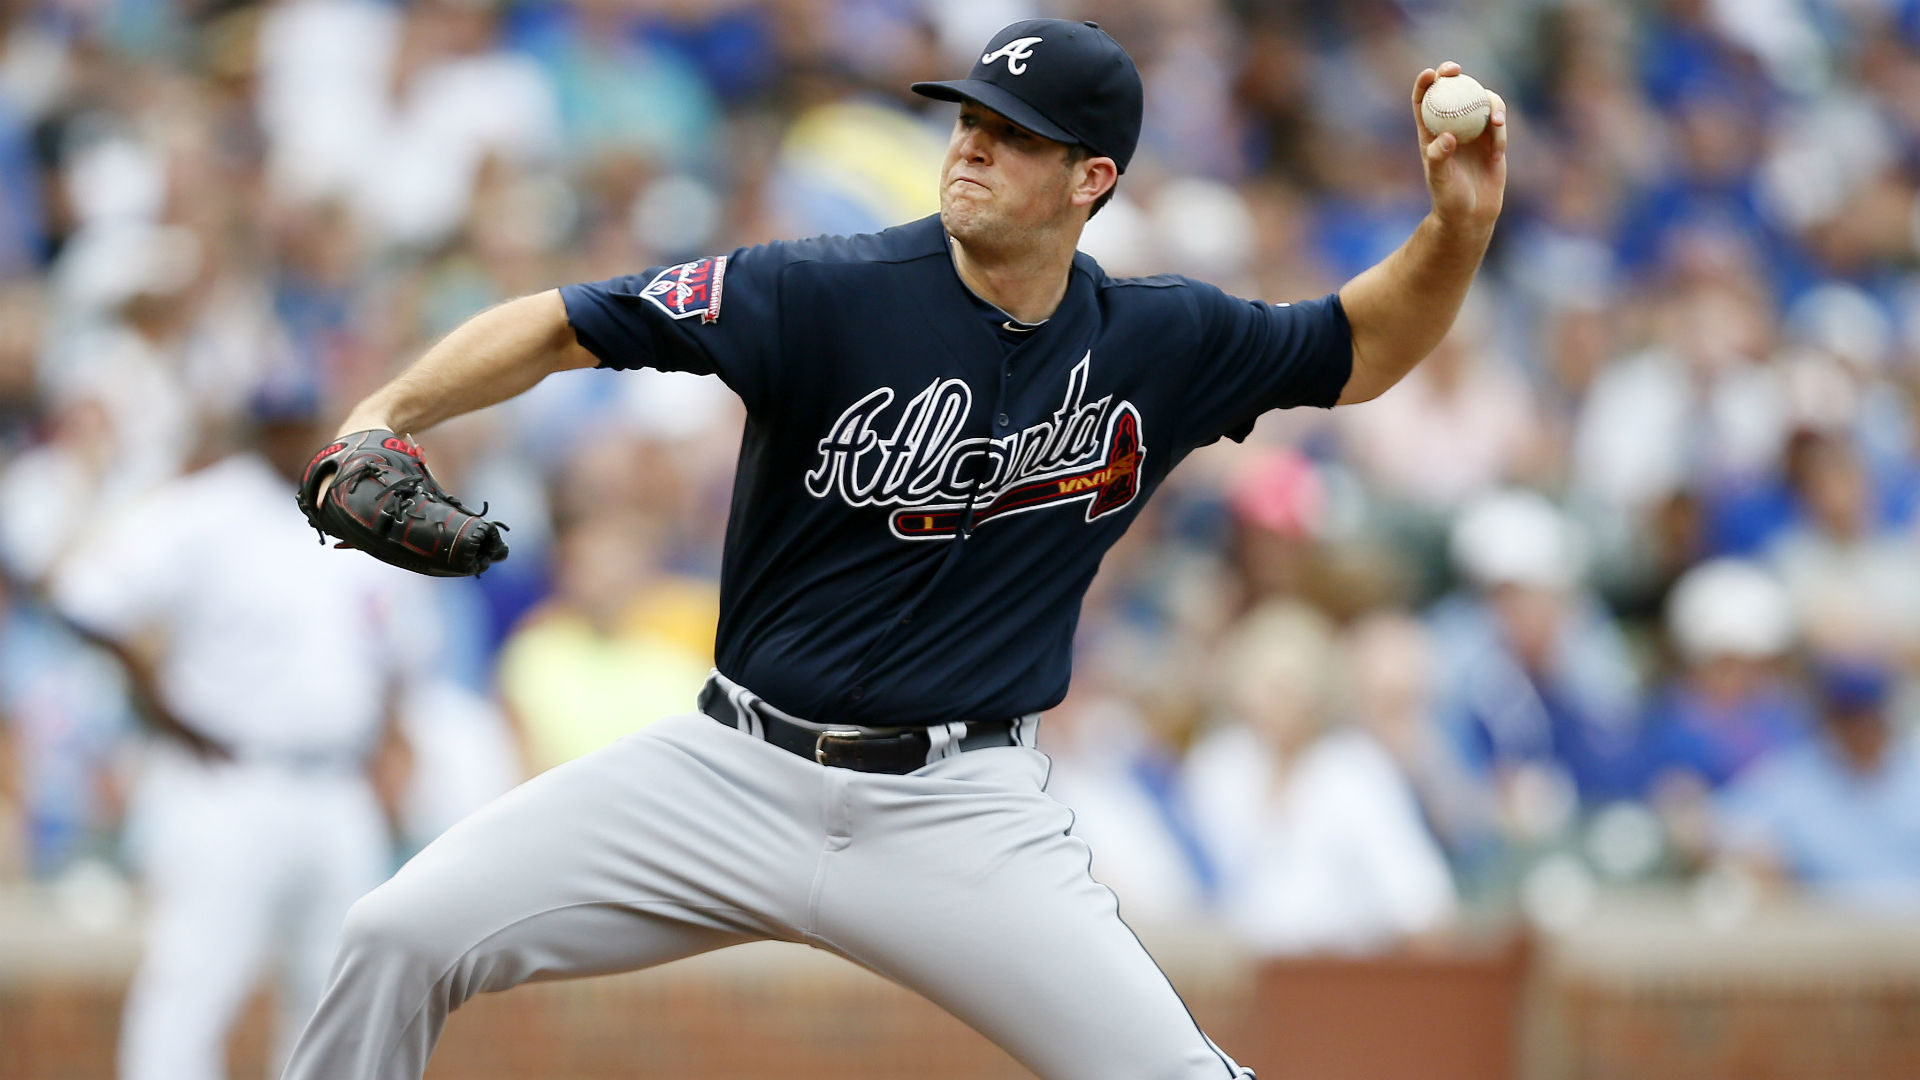 Fantasy baseball rankings: Friday's starting pitchers